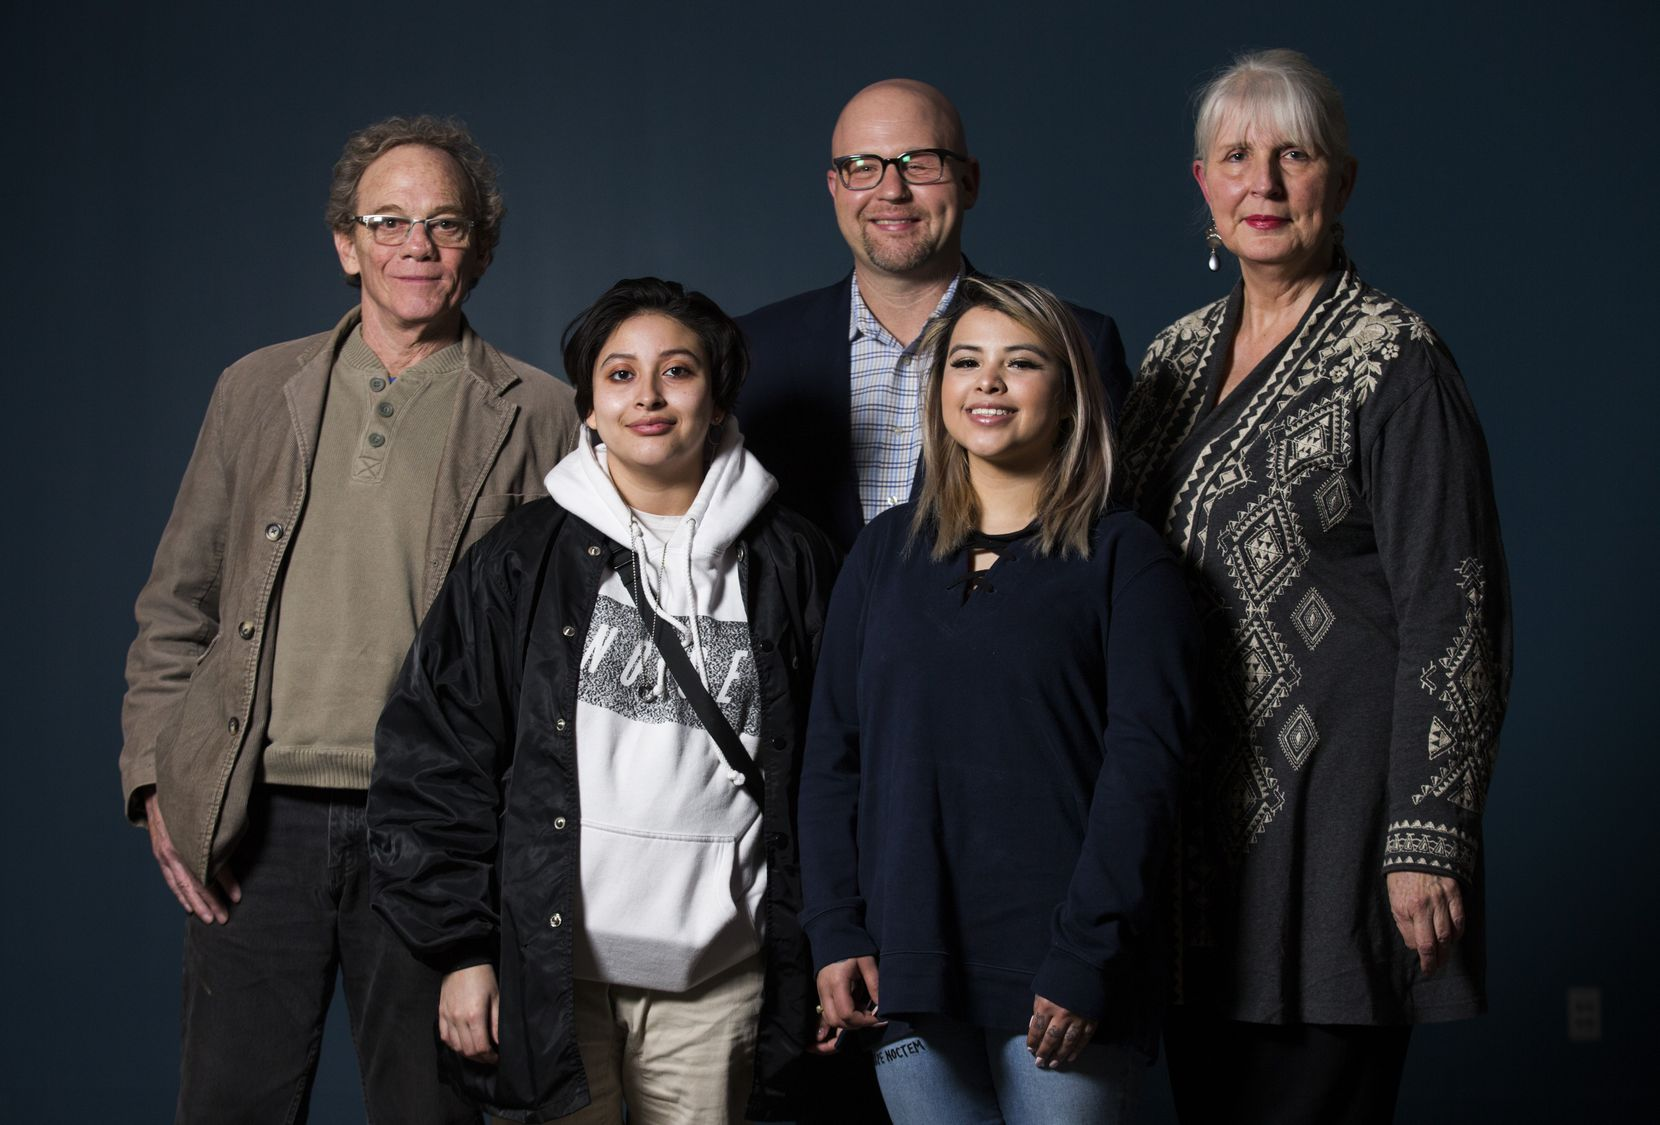 From left: 29 Pieces artist assistant Joe Stokes, 29 Pieces artist assistant Dolores Mendoza, UNT Dallas Dean of the School of Education John Gasko, 29 Pieces artist assistant Hope Trevino, and 29 Pieces Executive Director and founder Karen Blessen.